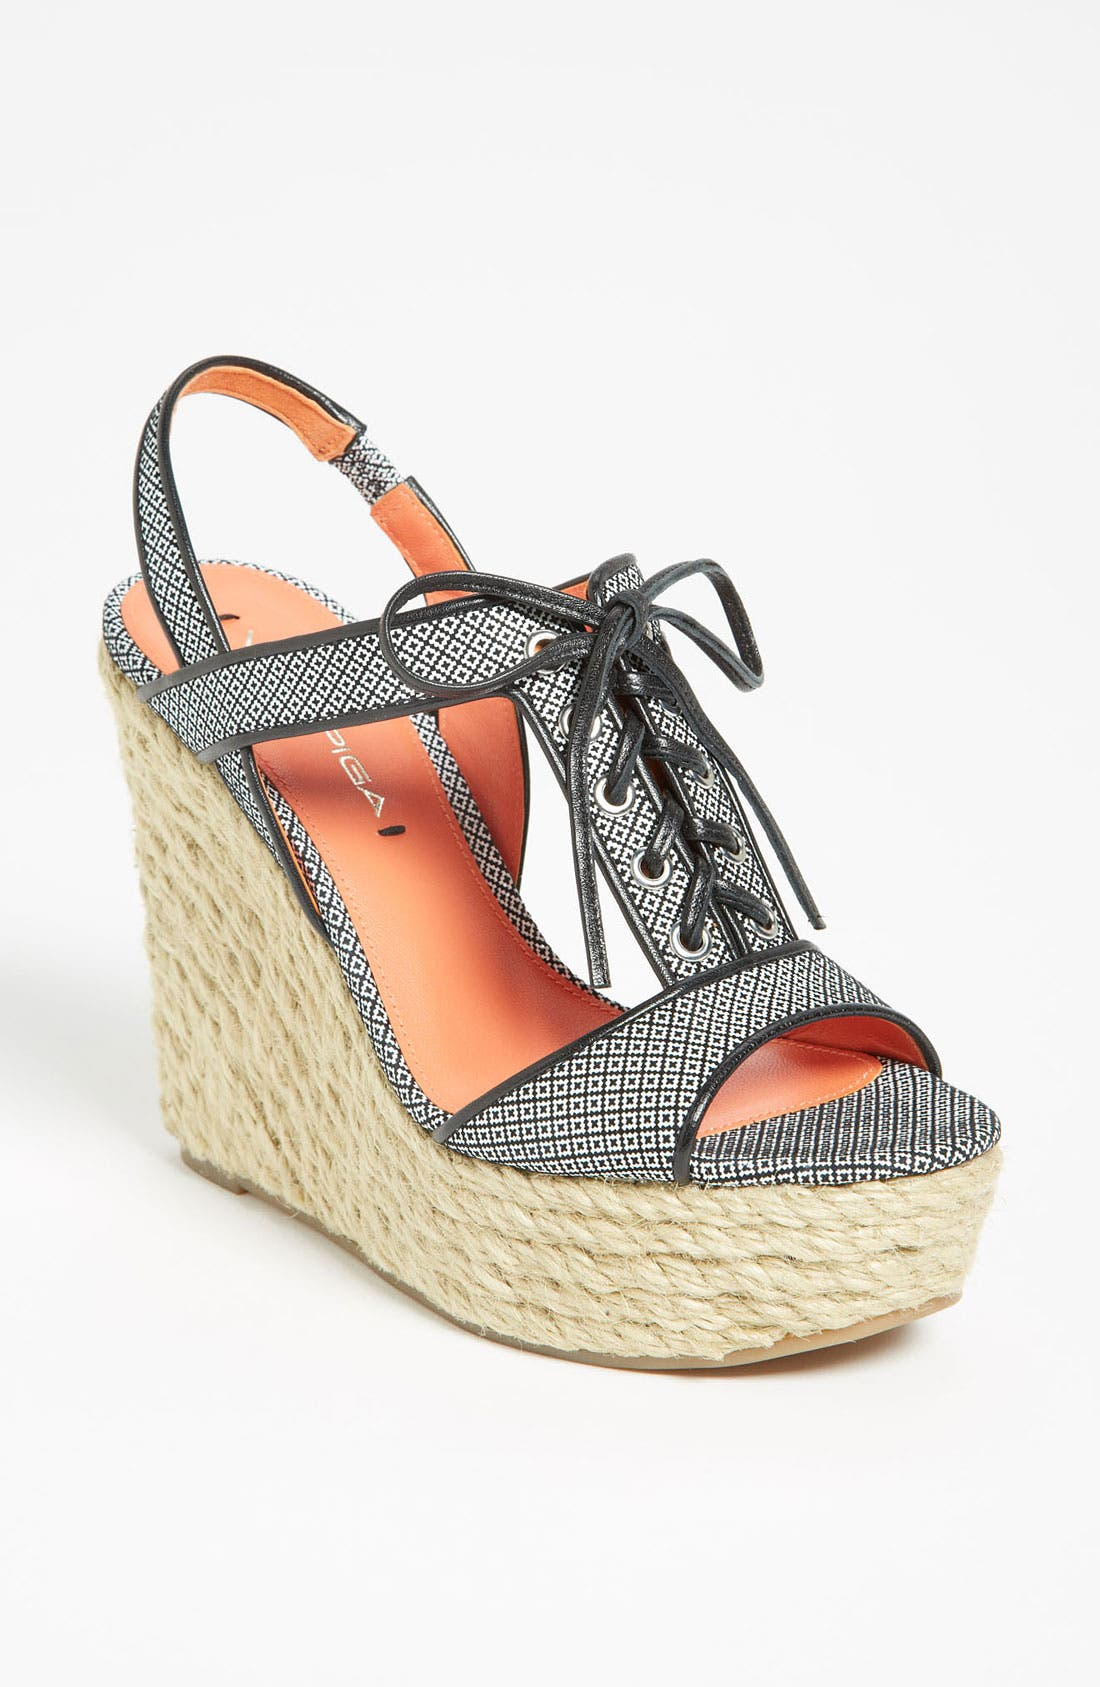 Alternate Image 1 Selected - Via Spiga 'Kassiana' Wedge Sandal